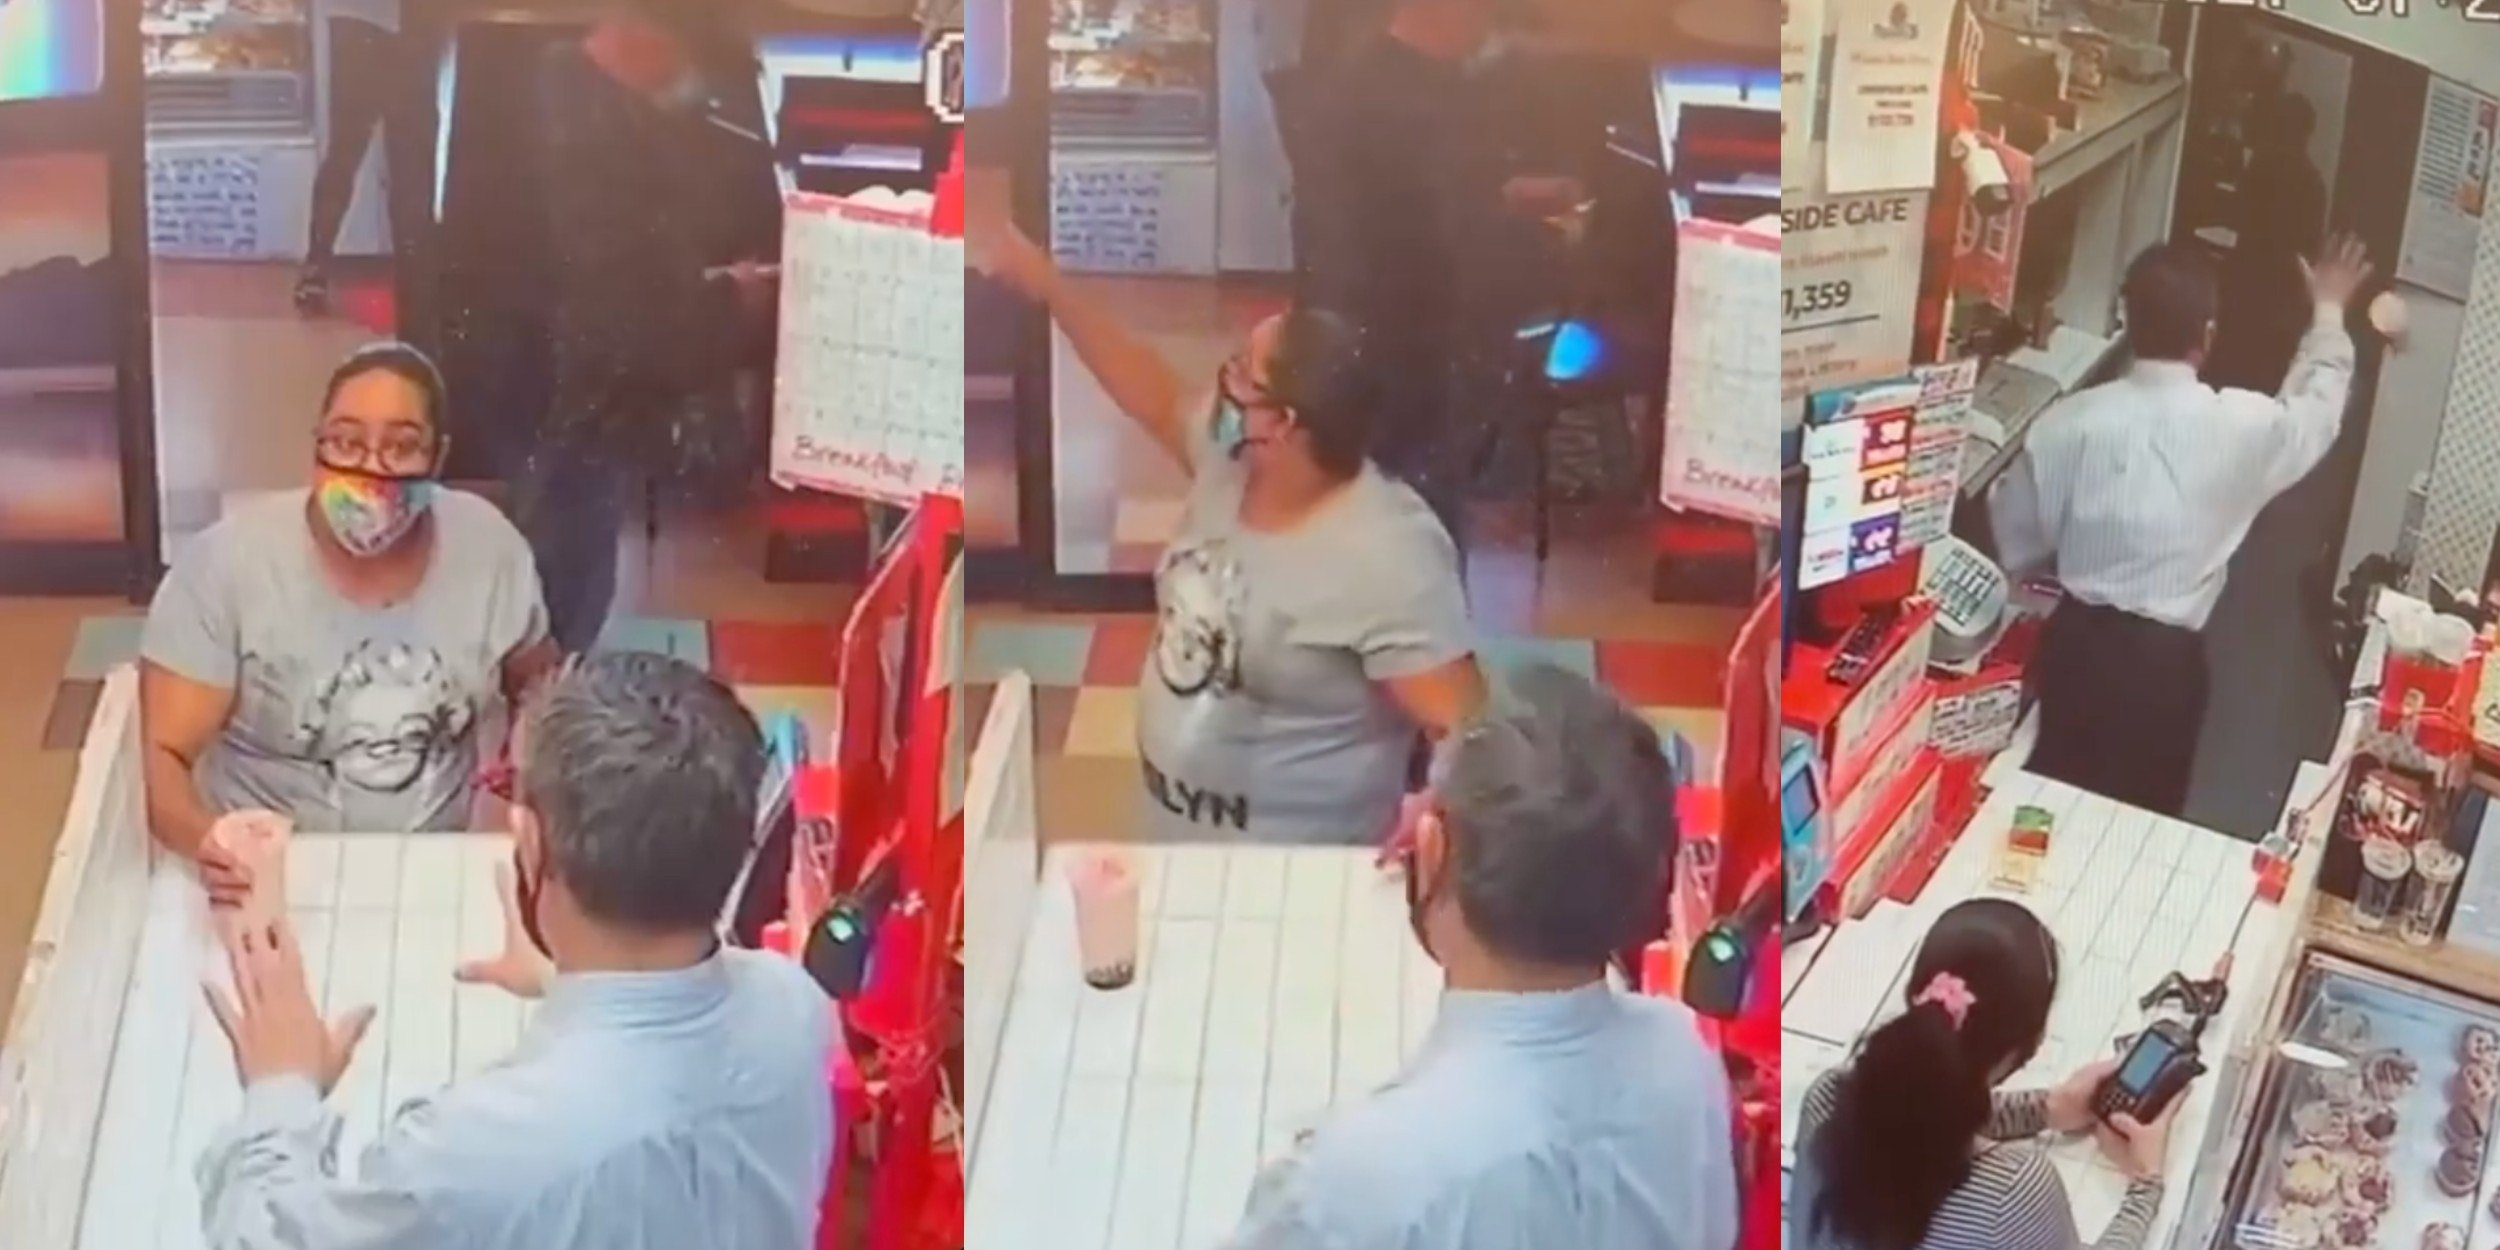 A boba shop got review-bombed after a customer claimed the owner threw a drink on her and her child—but a video shows otherwise